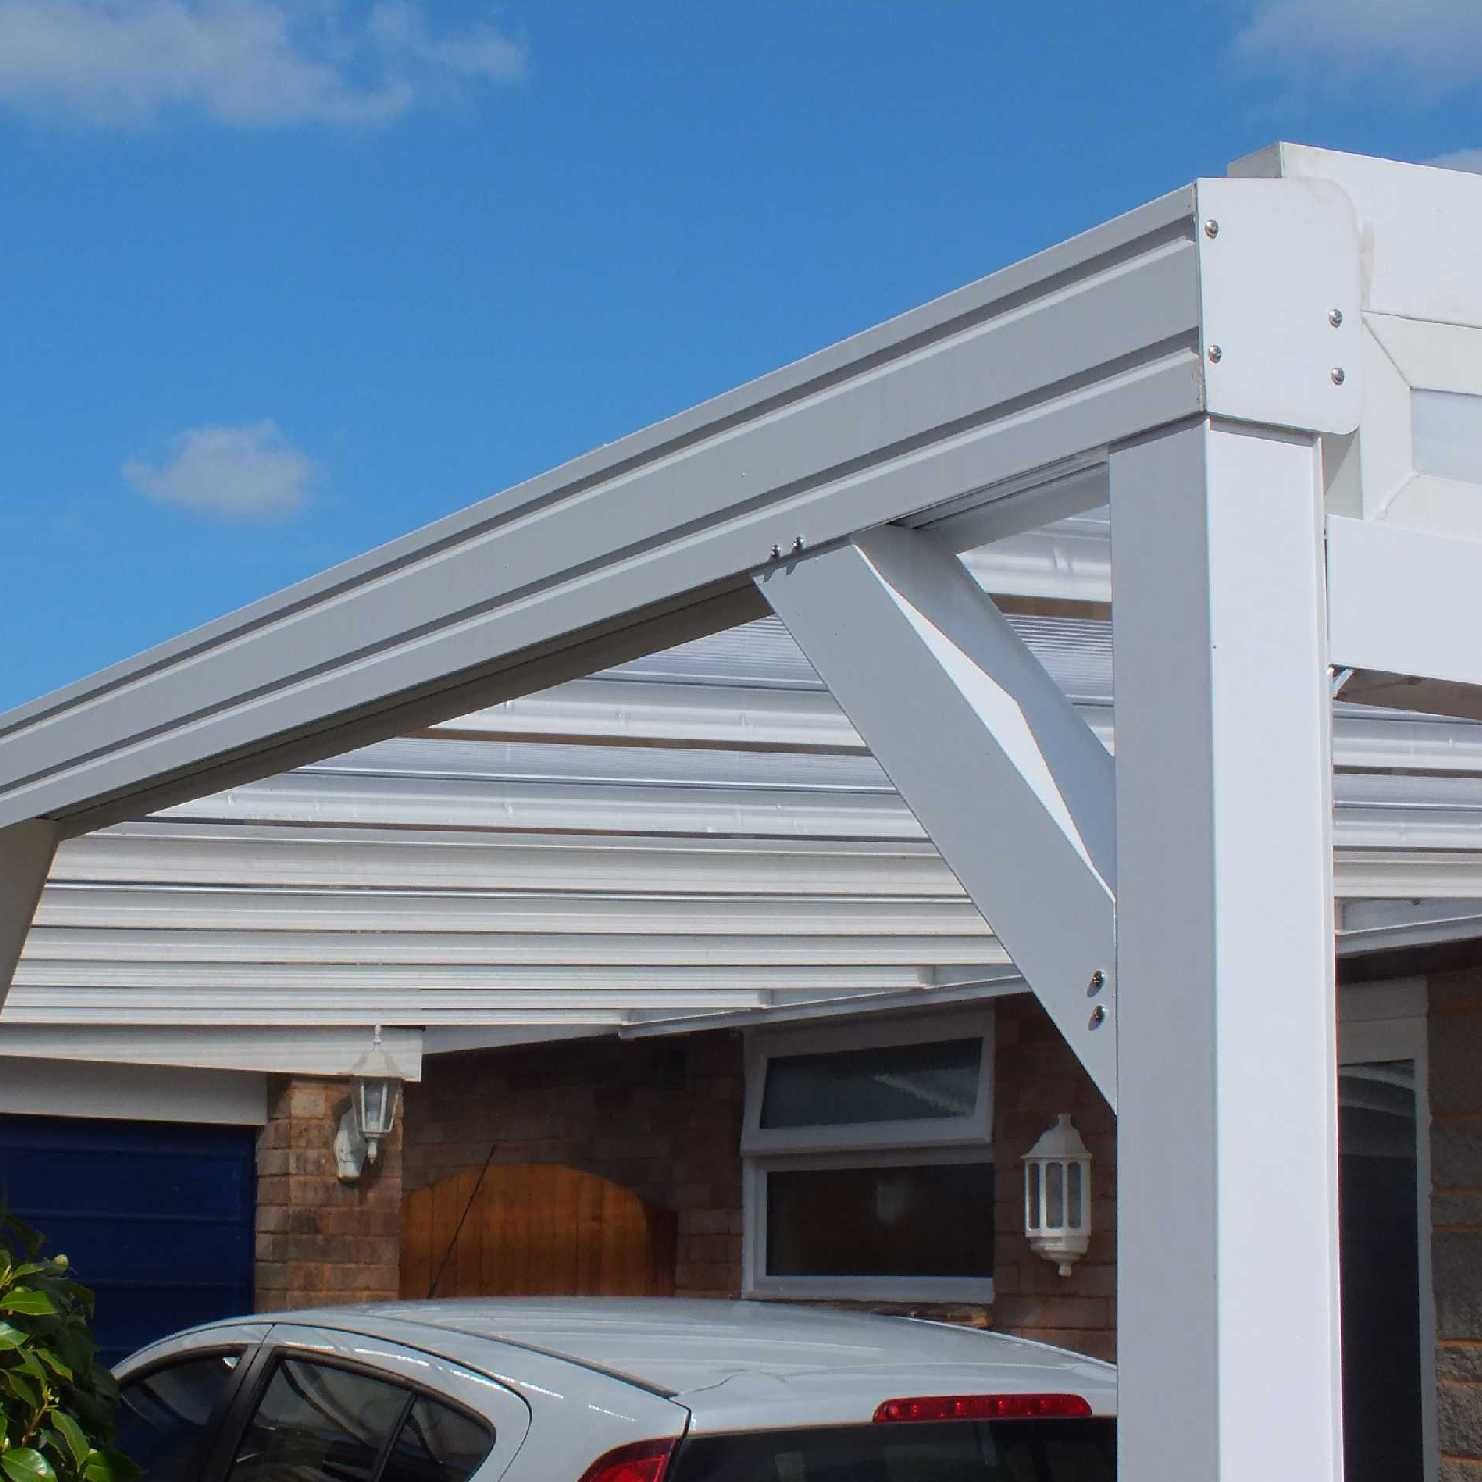 Great deals on Omega Smart Lean-To Canopy with 16mm Polycarbonate Glazing - 5.2m (W) x 1.5m (P), (3) Supporting Posts